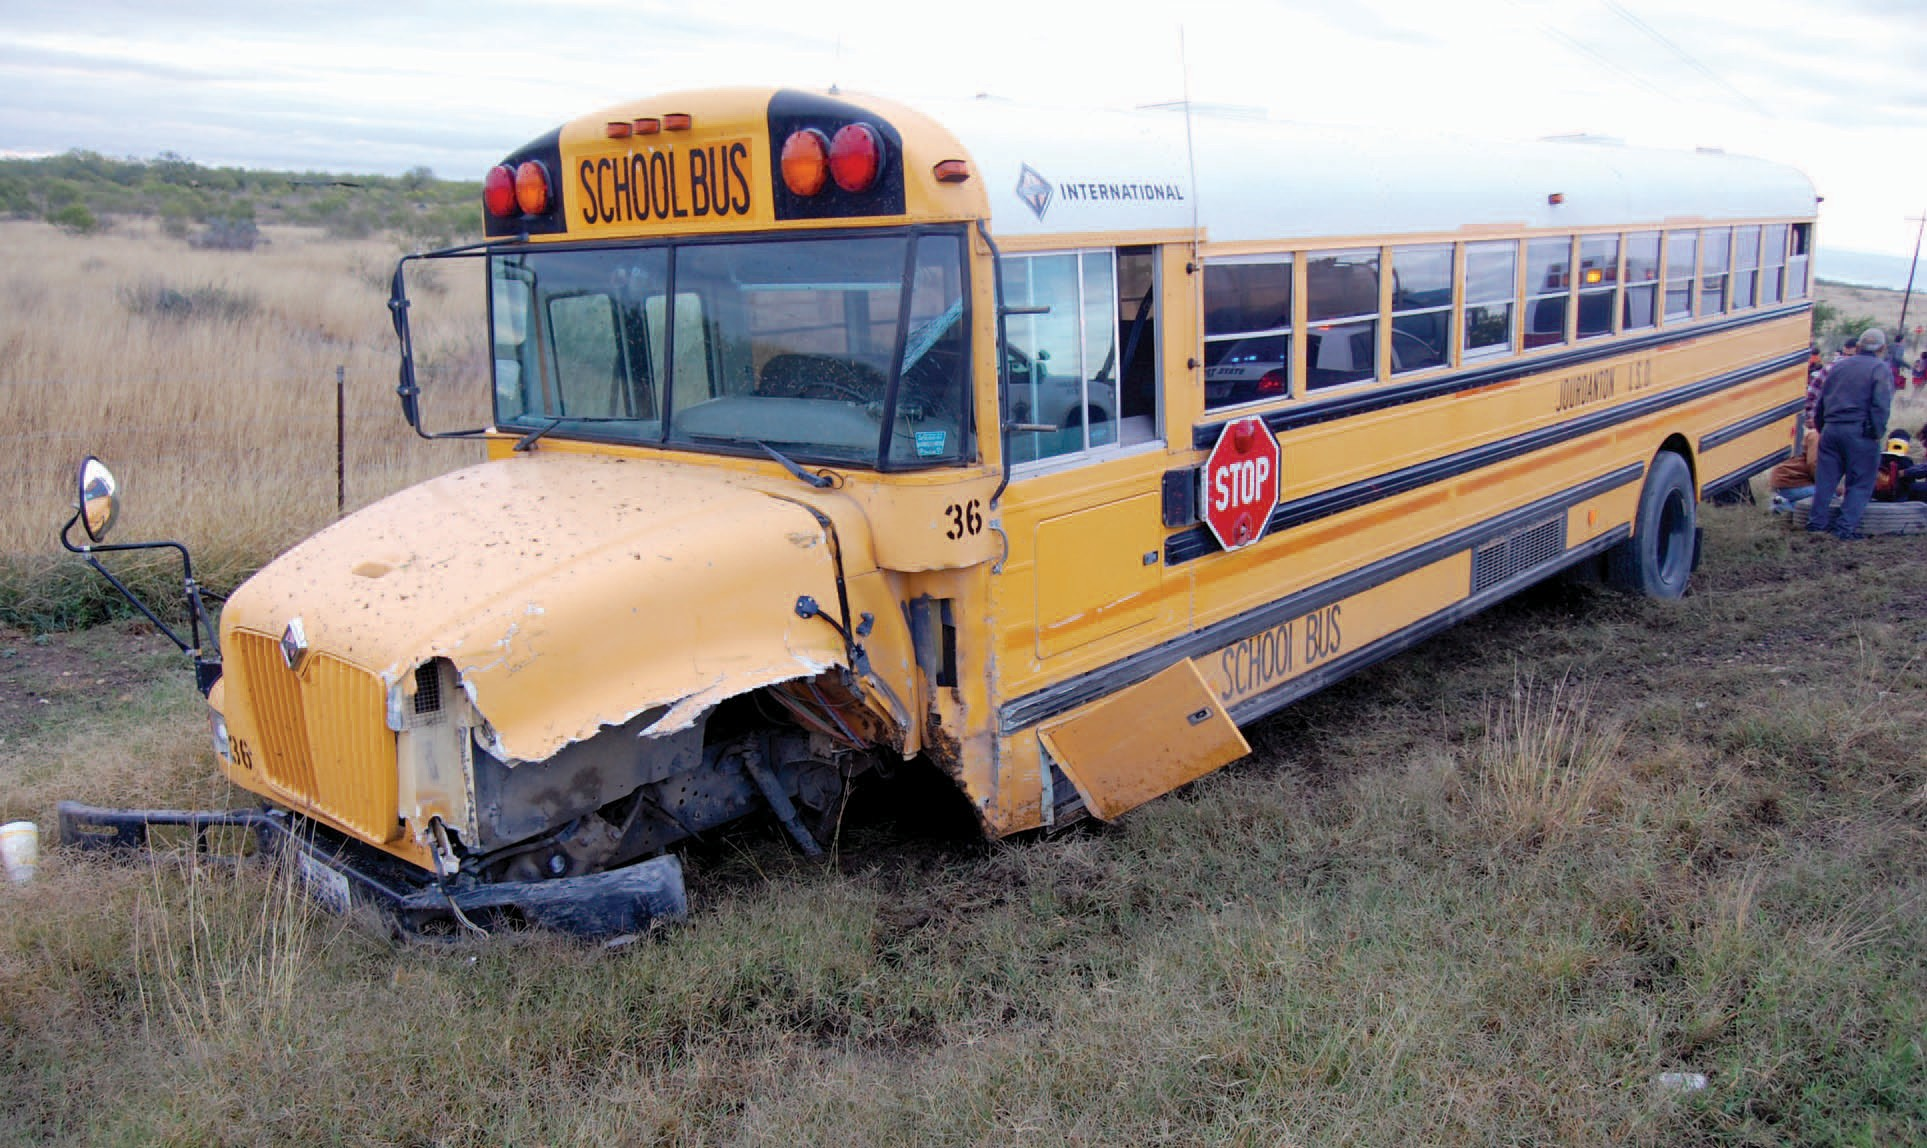 A Jourdanton ISD bus held 44 students on their way to school Monday morning when it was involved in an accident five miles south of Jourdanton. None of the children were seriously injured. When the bus collided with a white pickup, the front wheels and axle were knocked loose, leaving the bus without any steering control.